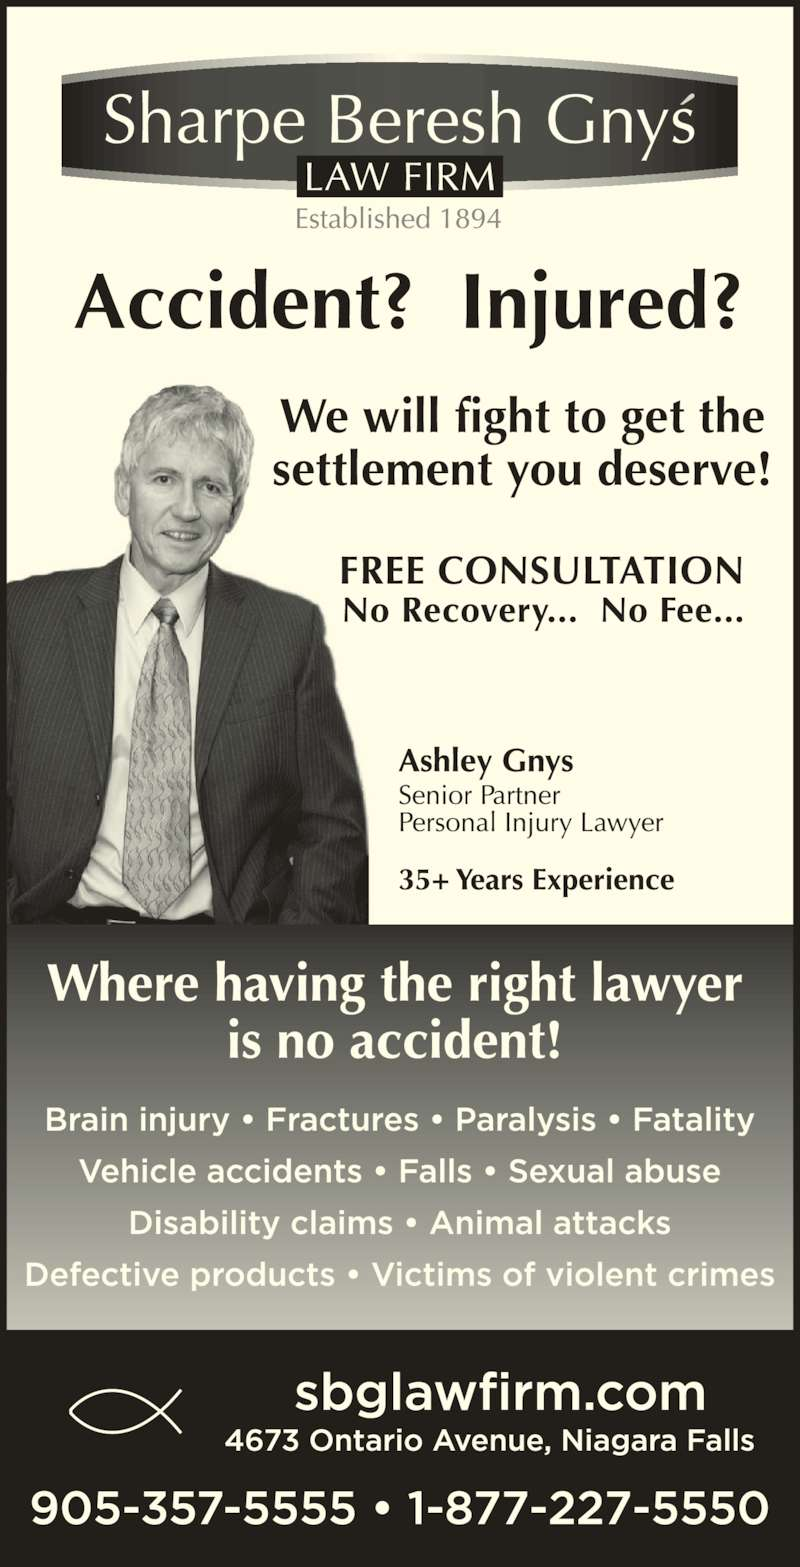 Sharpe Beresh & Gnys (9053575555) - Display Ad - We will fight to get the settlement you deserve!